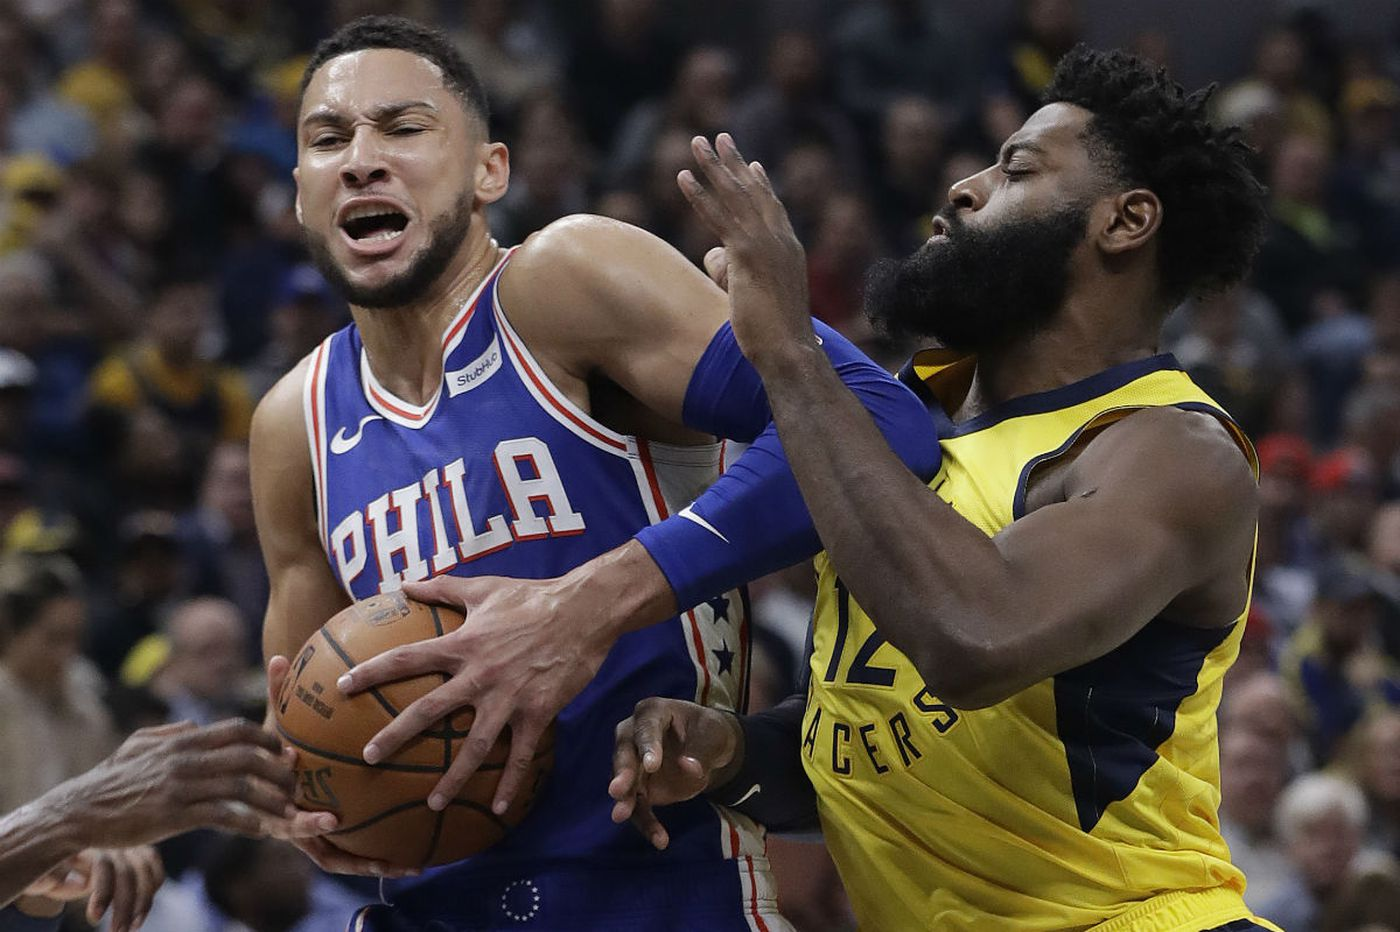 Sixers snag first road win of the season, defeating Pacers